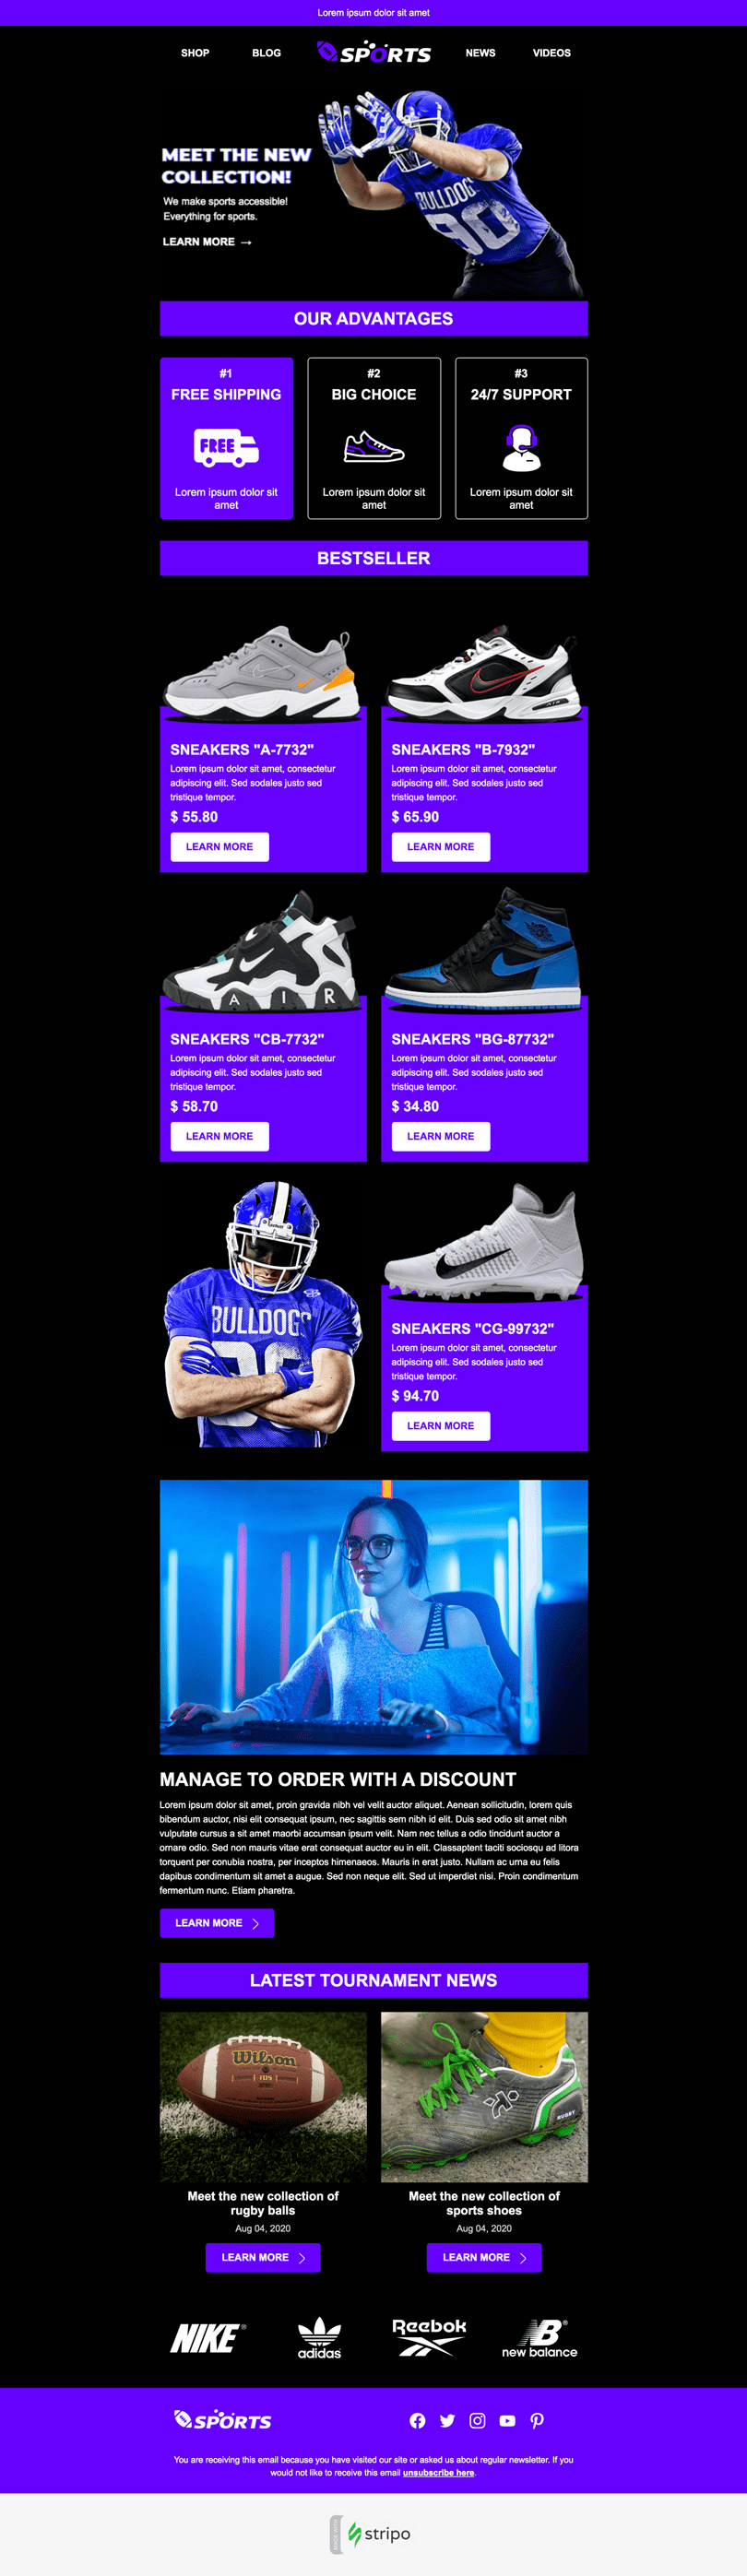 Super Bowl Email Template «Life is a game» for Sports industry desktop view